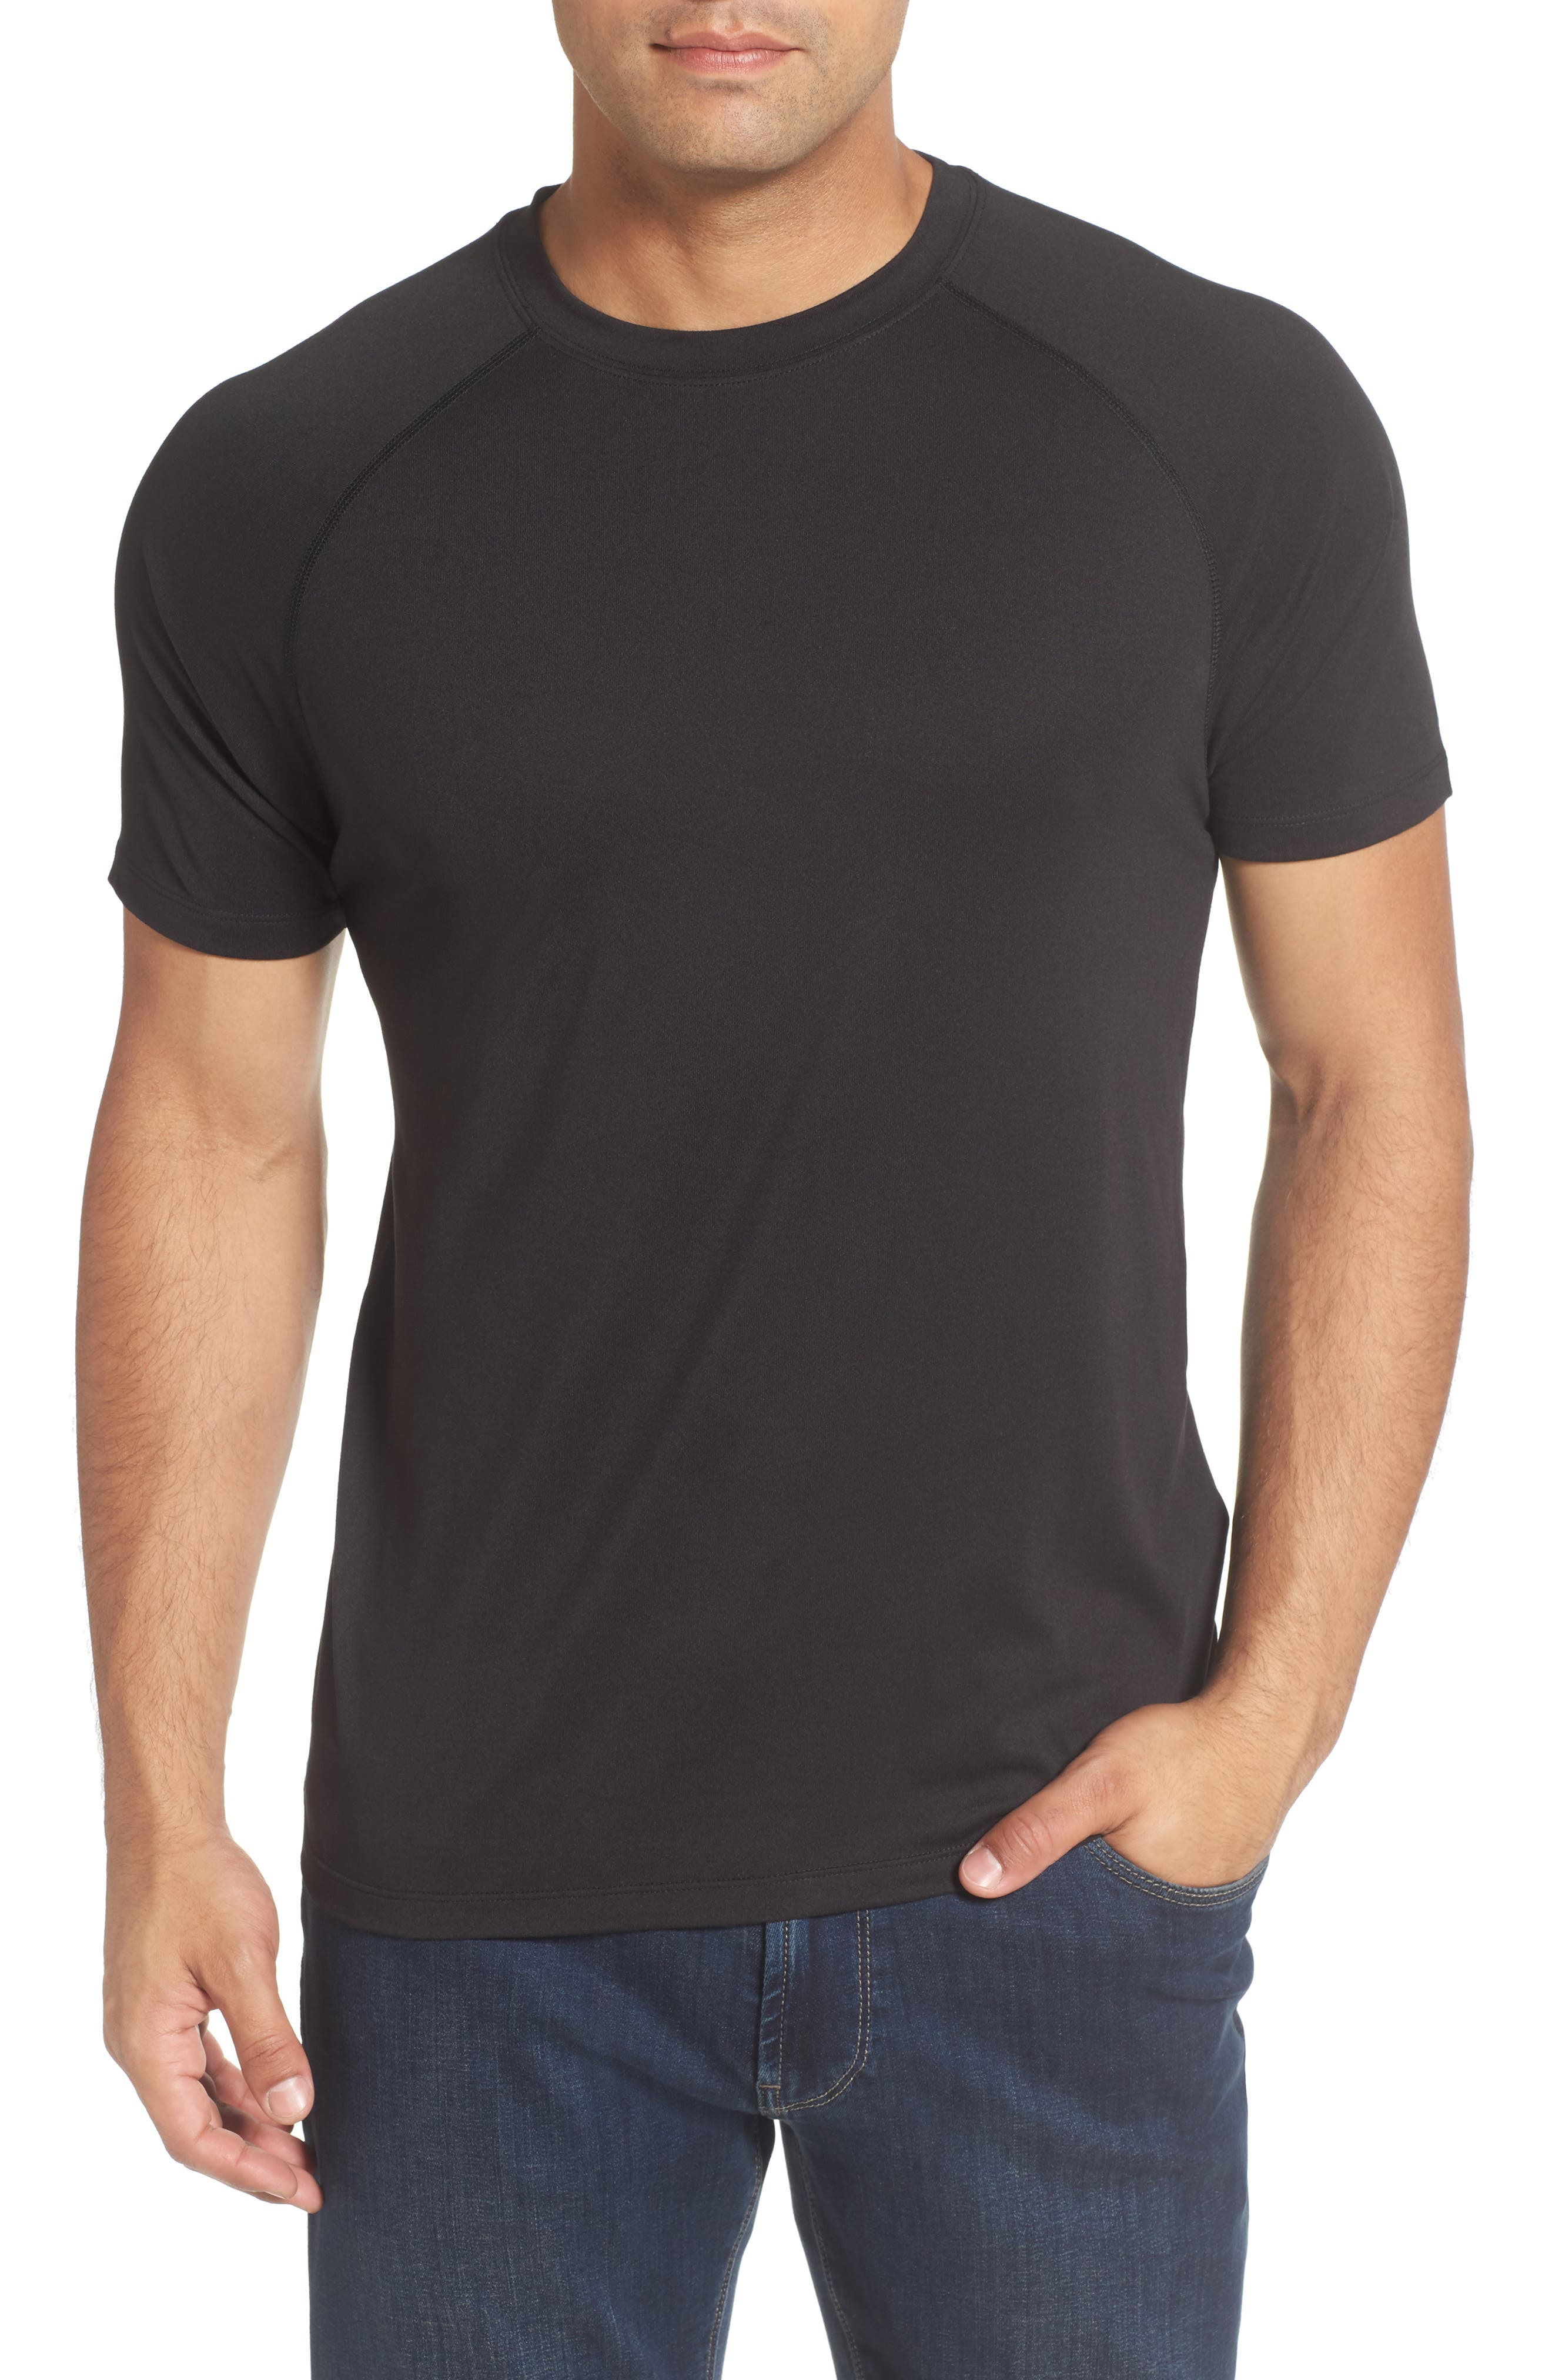 Rio Technical T-Shirt,                         Main,                         color, 001